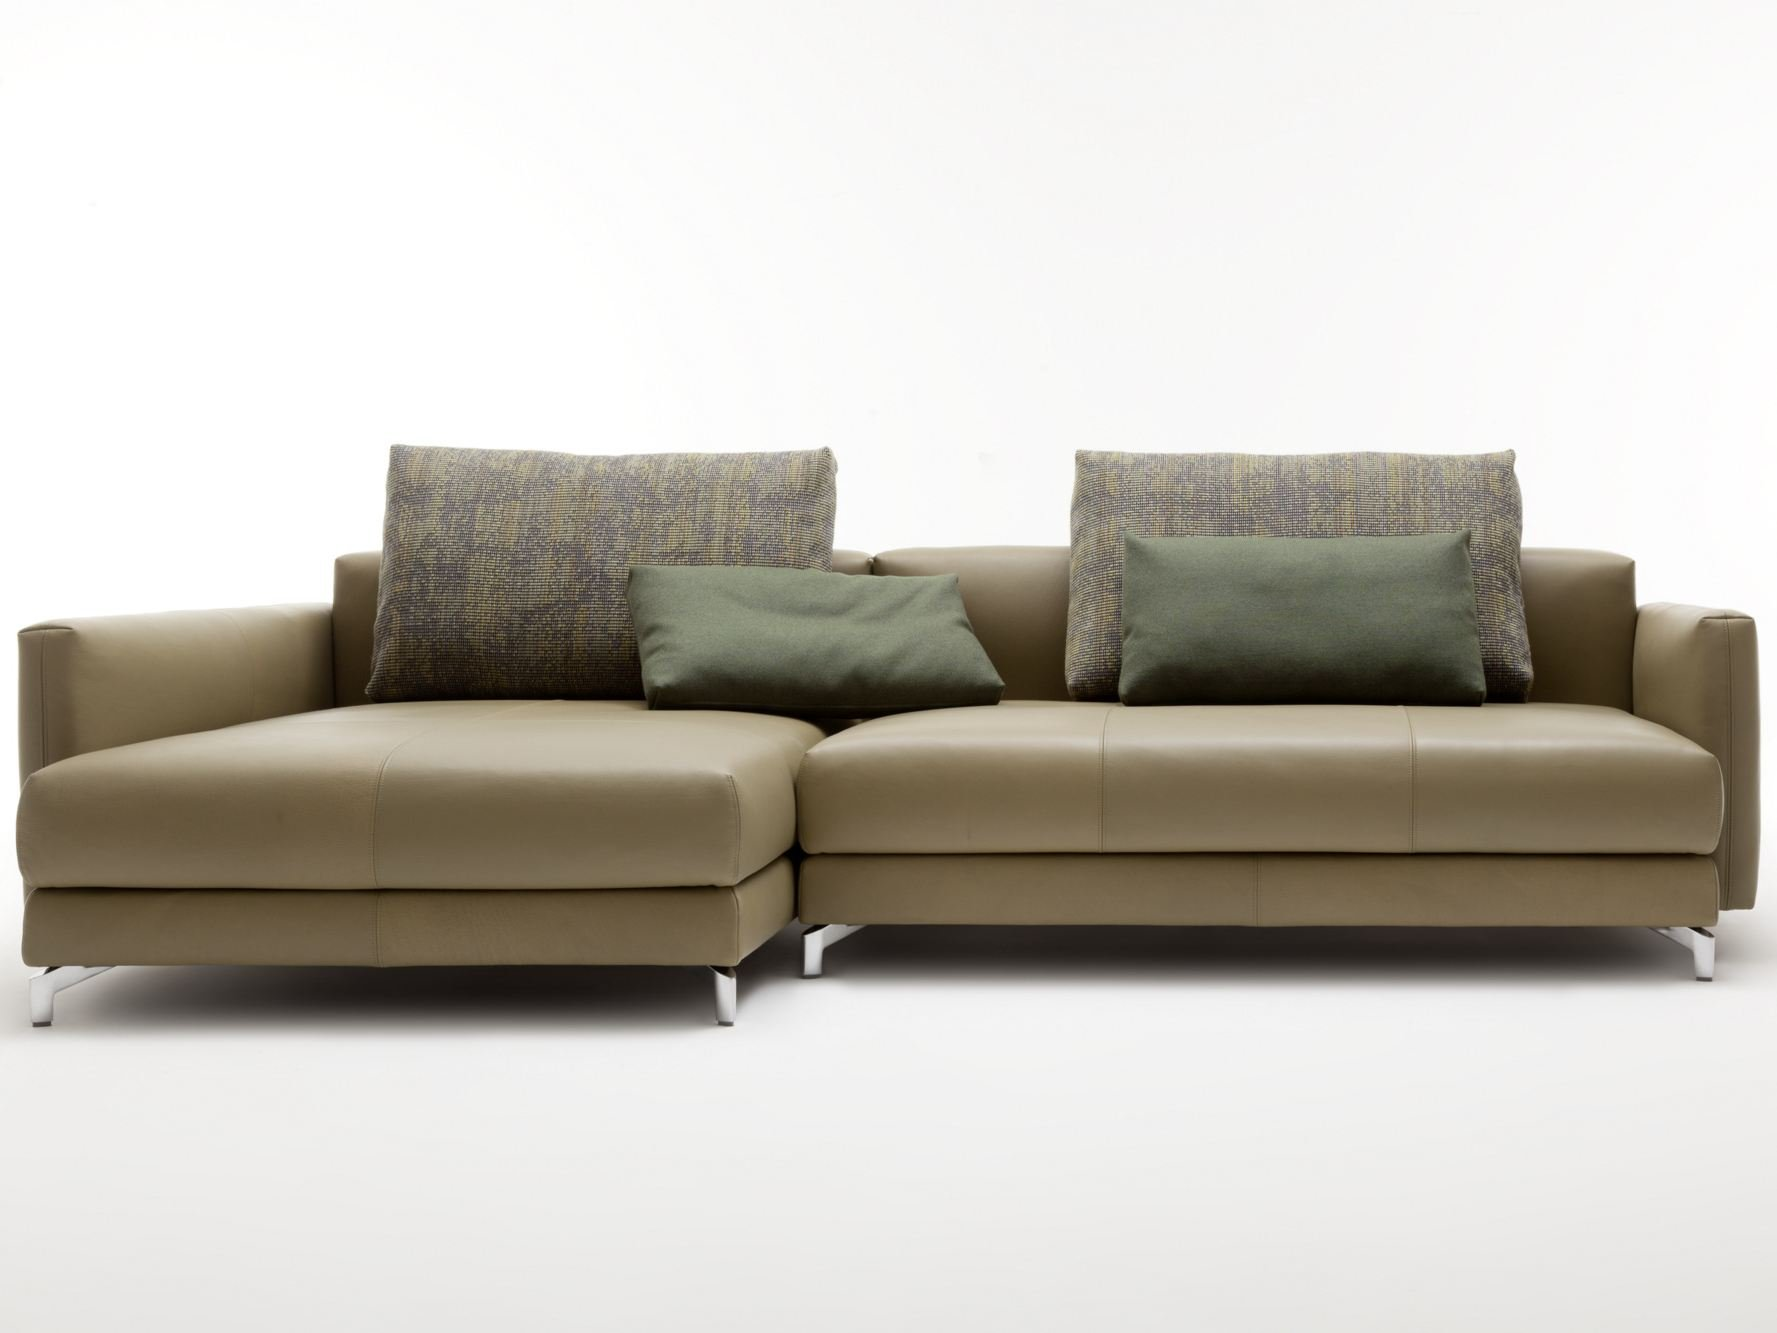 Benz sofas awesome rolf benz mio lounge sofas rolf benz for Benz couch